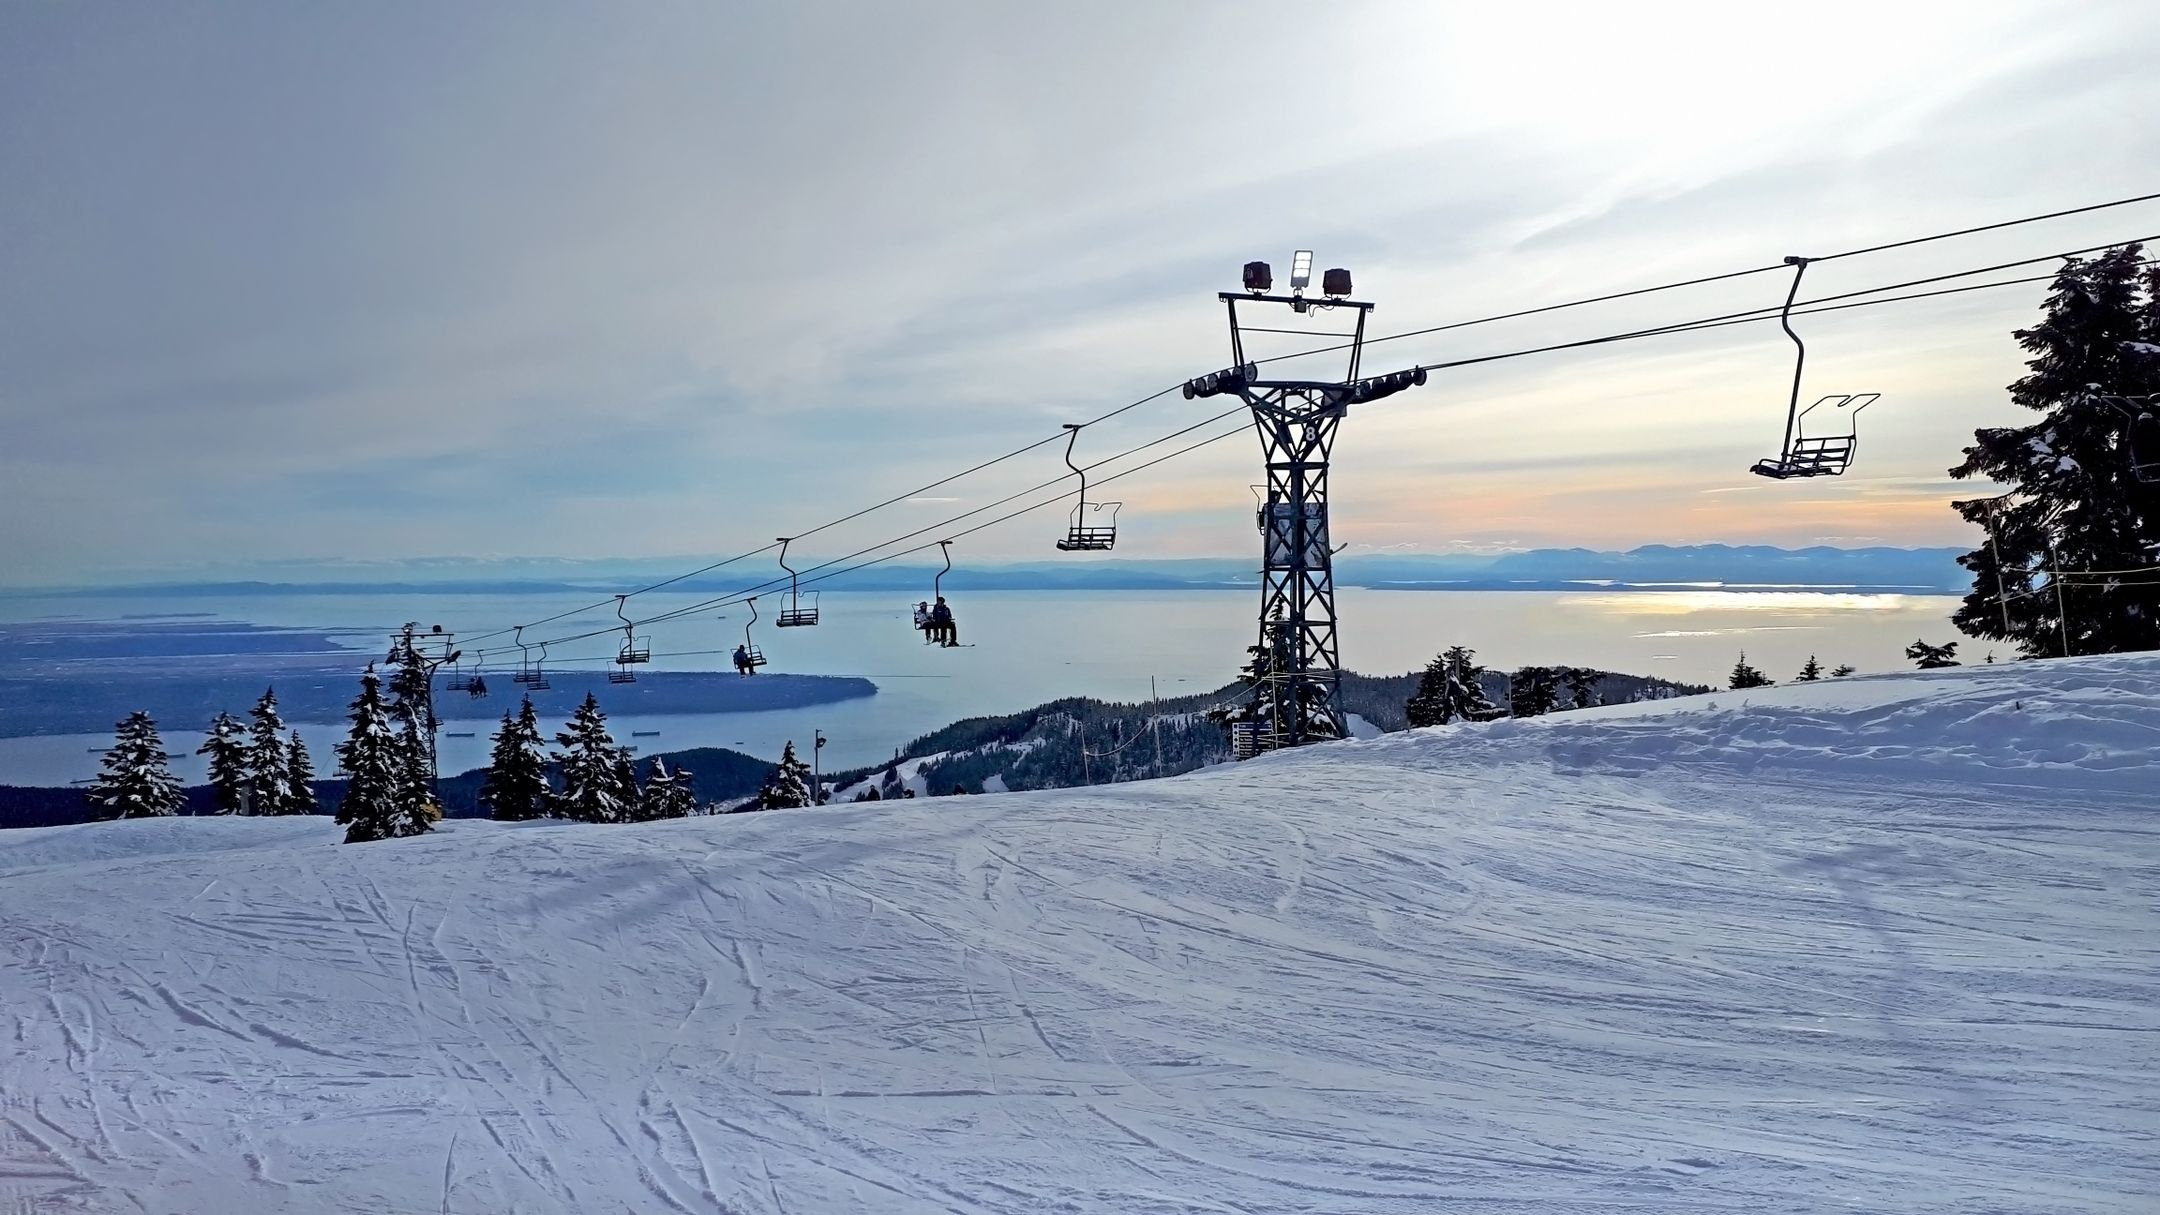 Skiing Canada ski resort Cypress Mountain ripatrip travel big